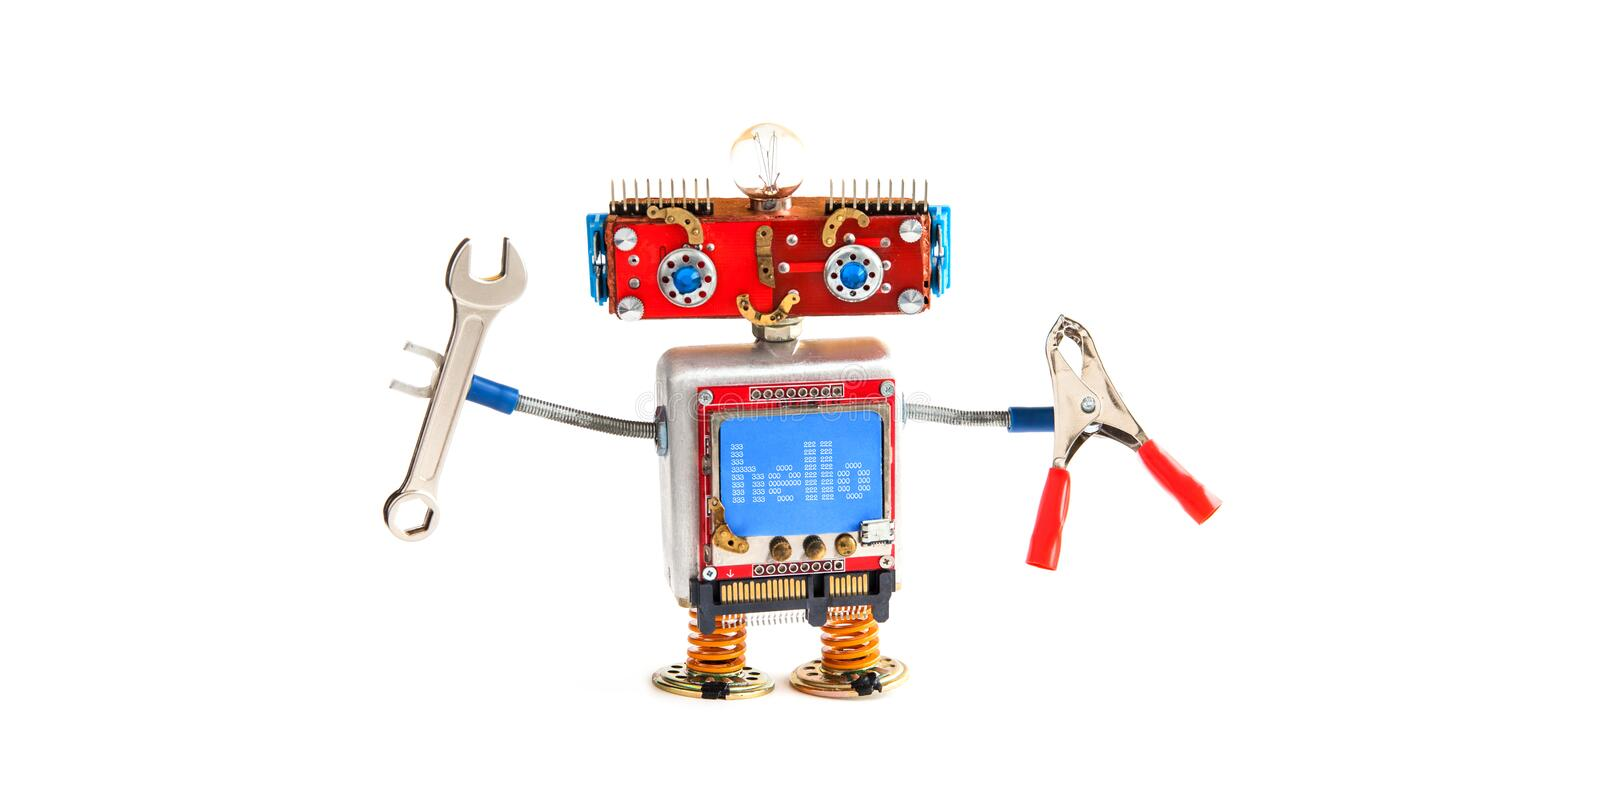 Handyman robot chat bot with hand wrench, pliers on white background. Smiley red head mechanical cyborg, blue monitor royalty free stock images